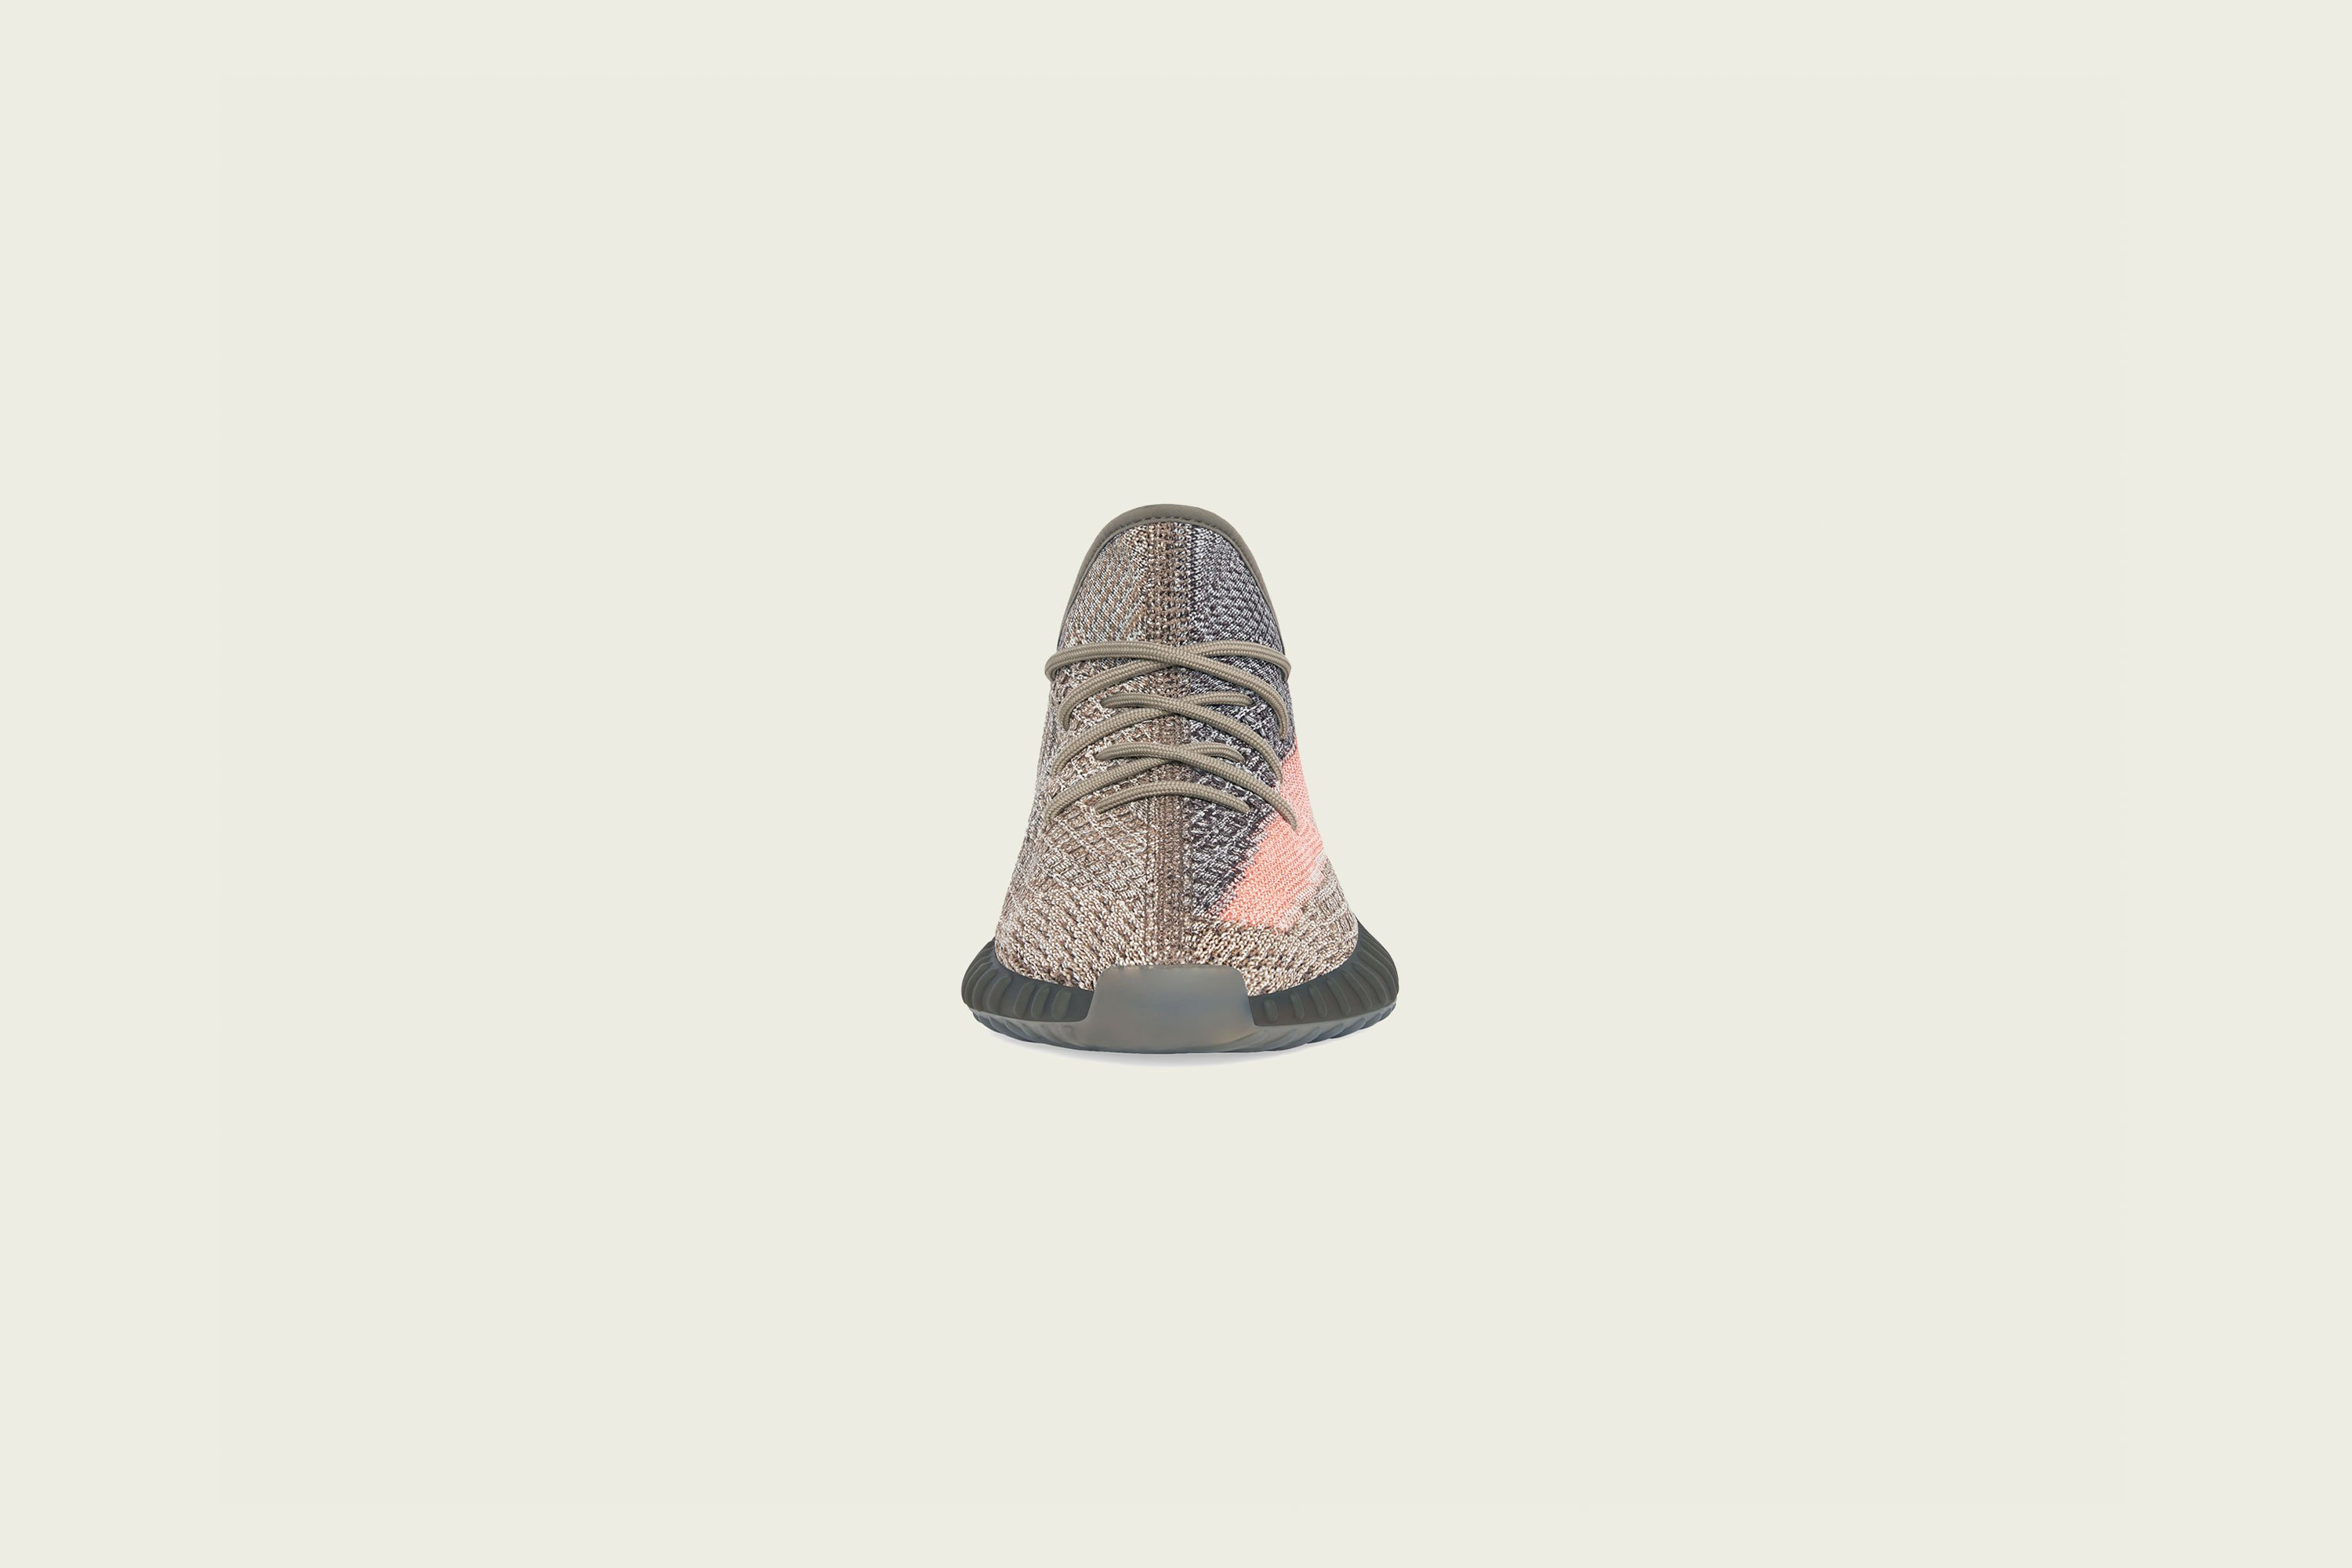 Up There Launches - adidas Originals Yeezy Boost 350V2 'Ash Stone'